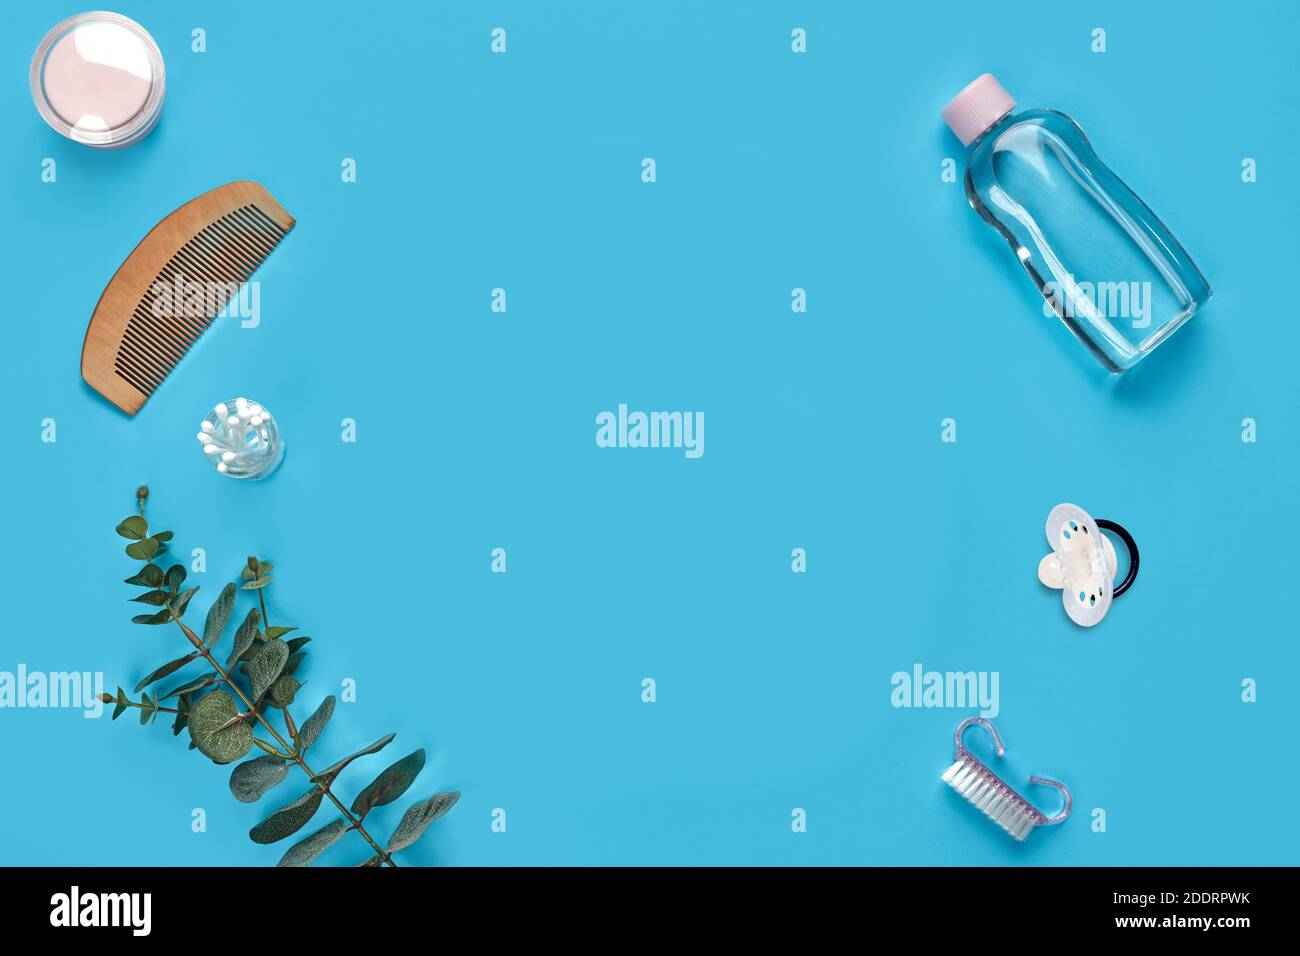 Wooden hair comb, cotton pads, pacifier, bottle with transparent liquid, cotton swabs, brush and green twig on blue background. Close up, copy space Stock Photo